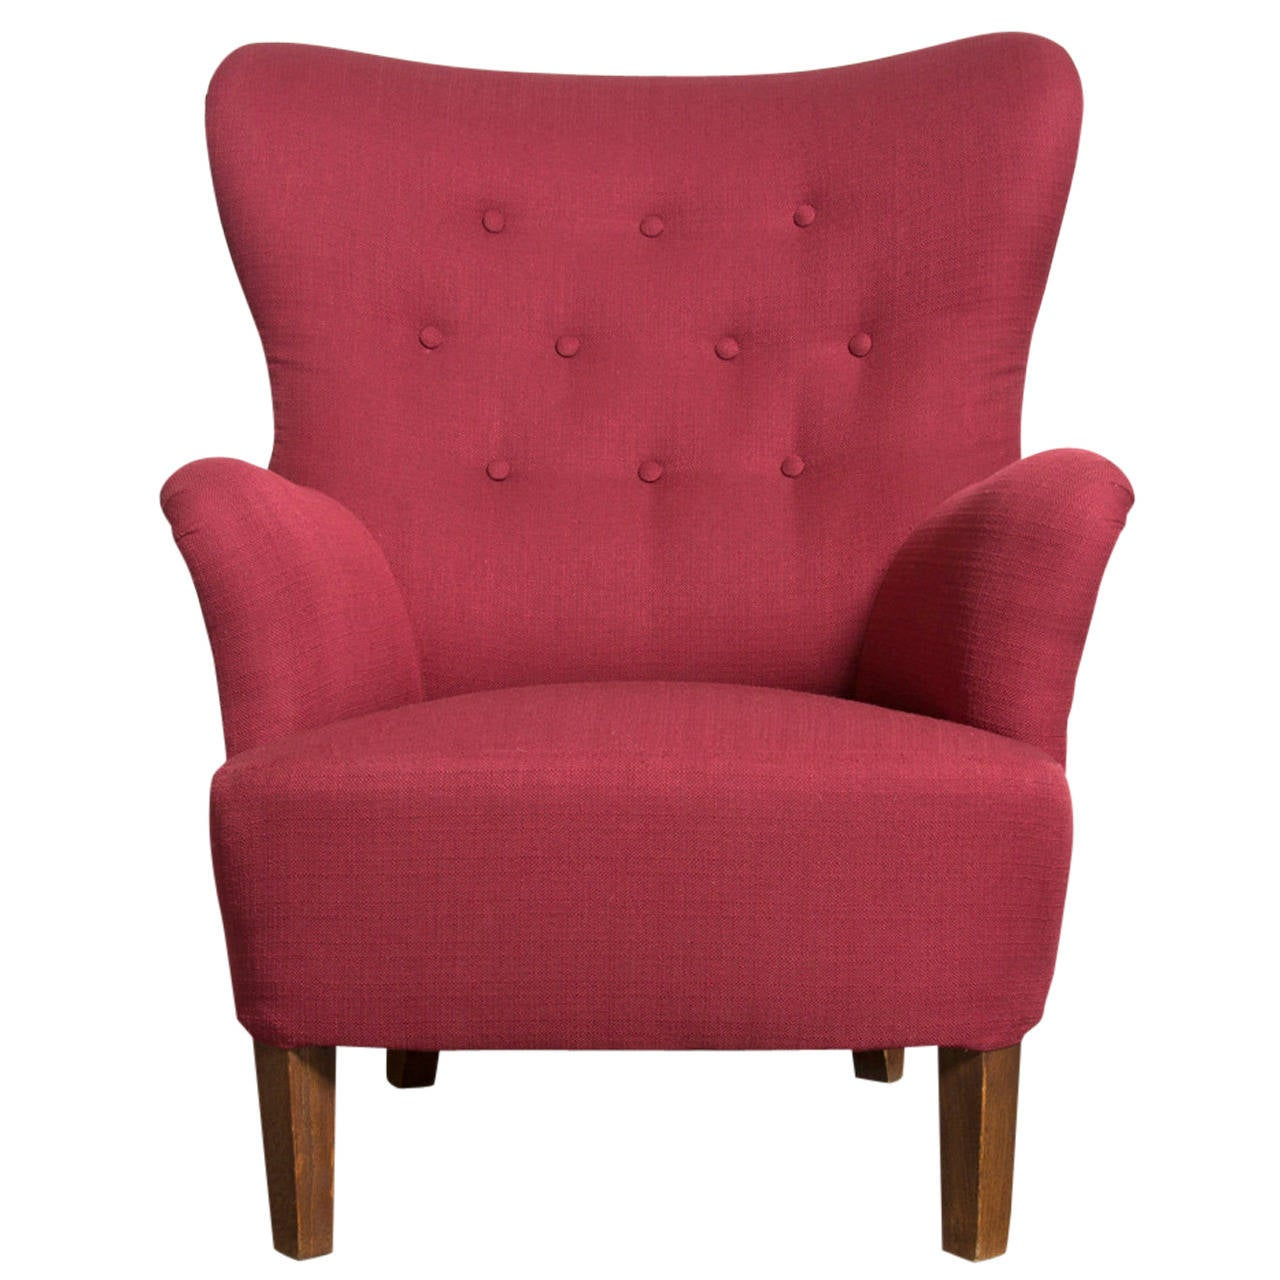 Theo Ruth for Artifort High Back Lounge Chair at 1stdibs